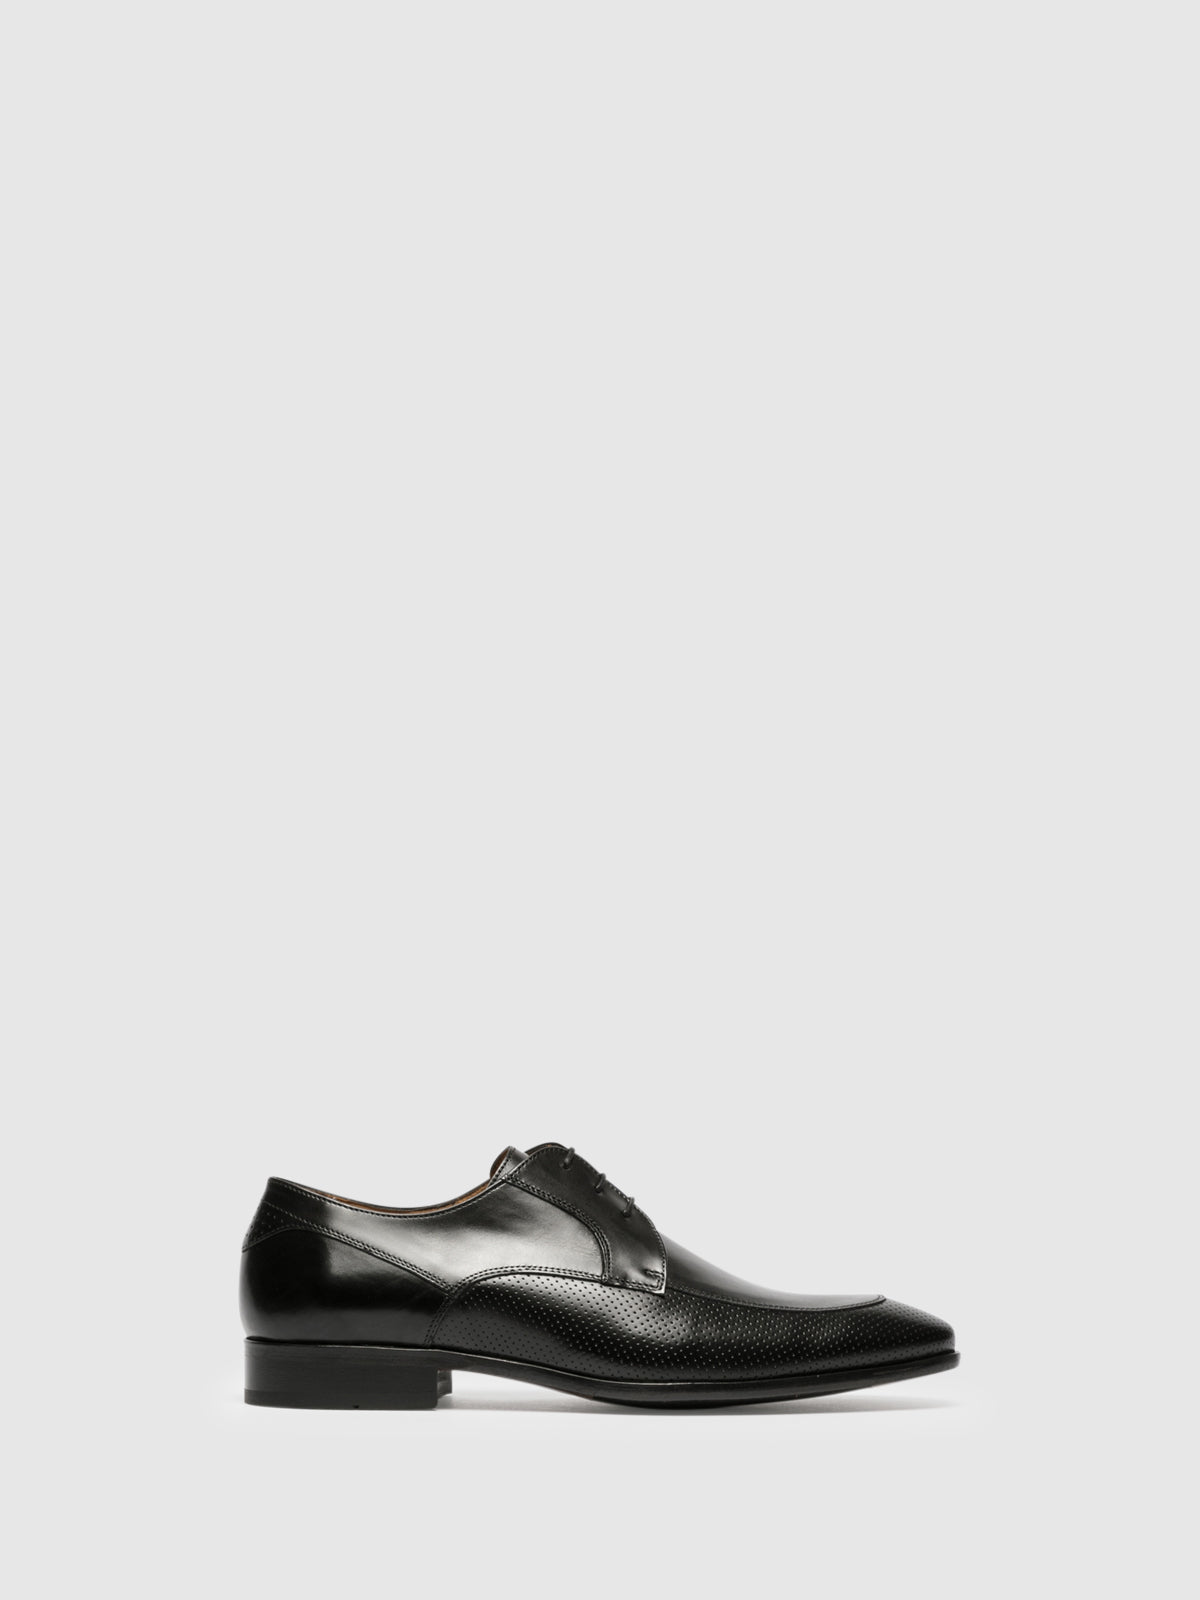 Gino Bianchi Black Derby Shoes